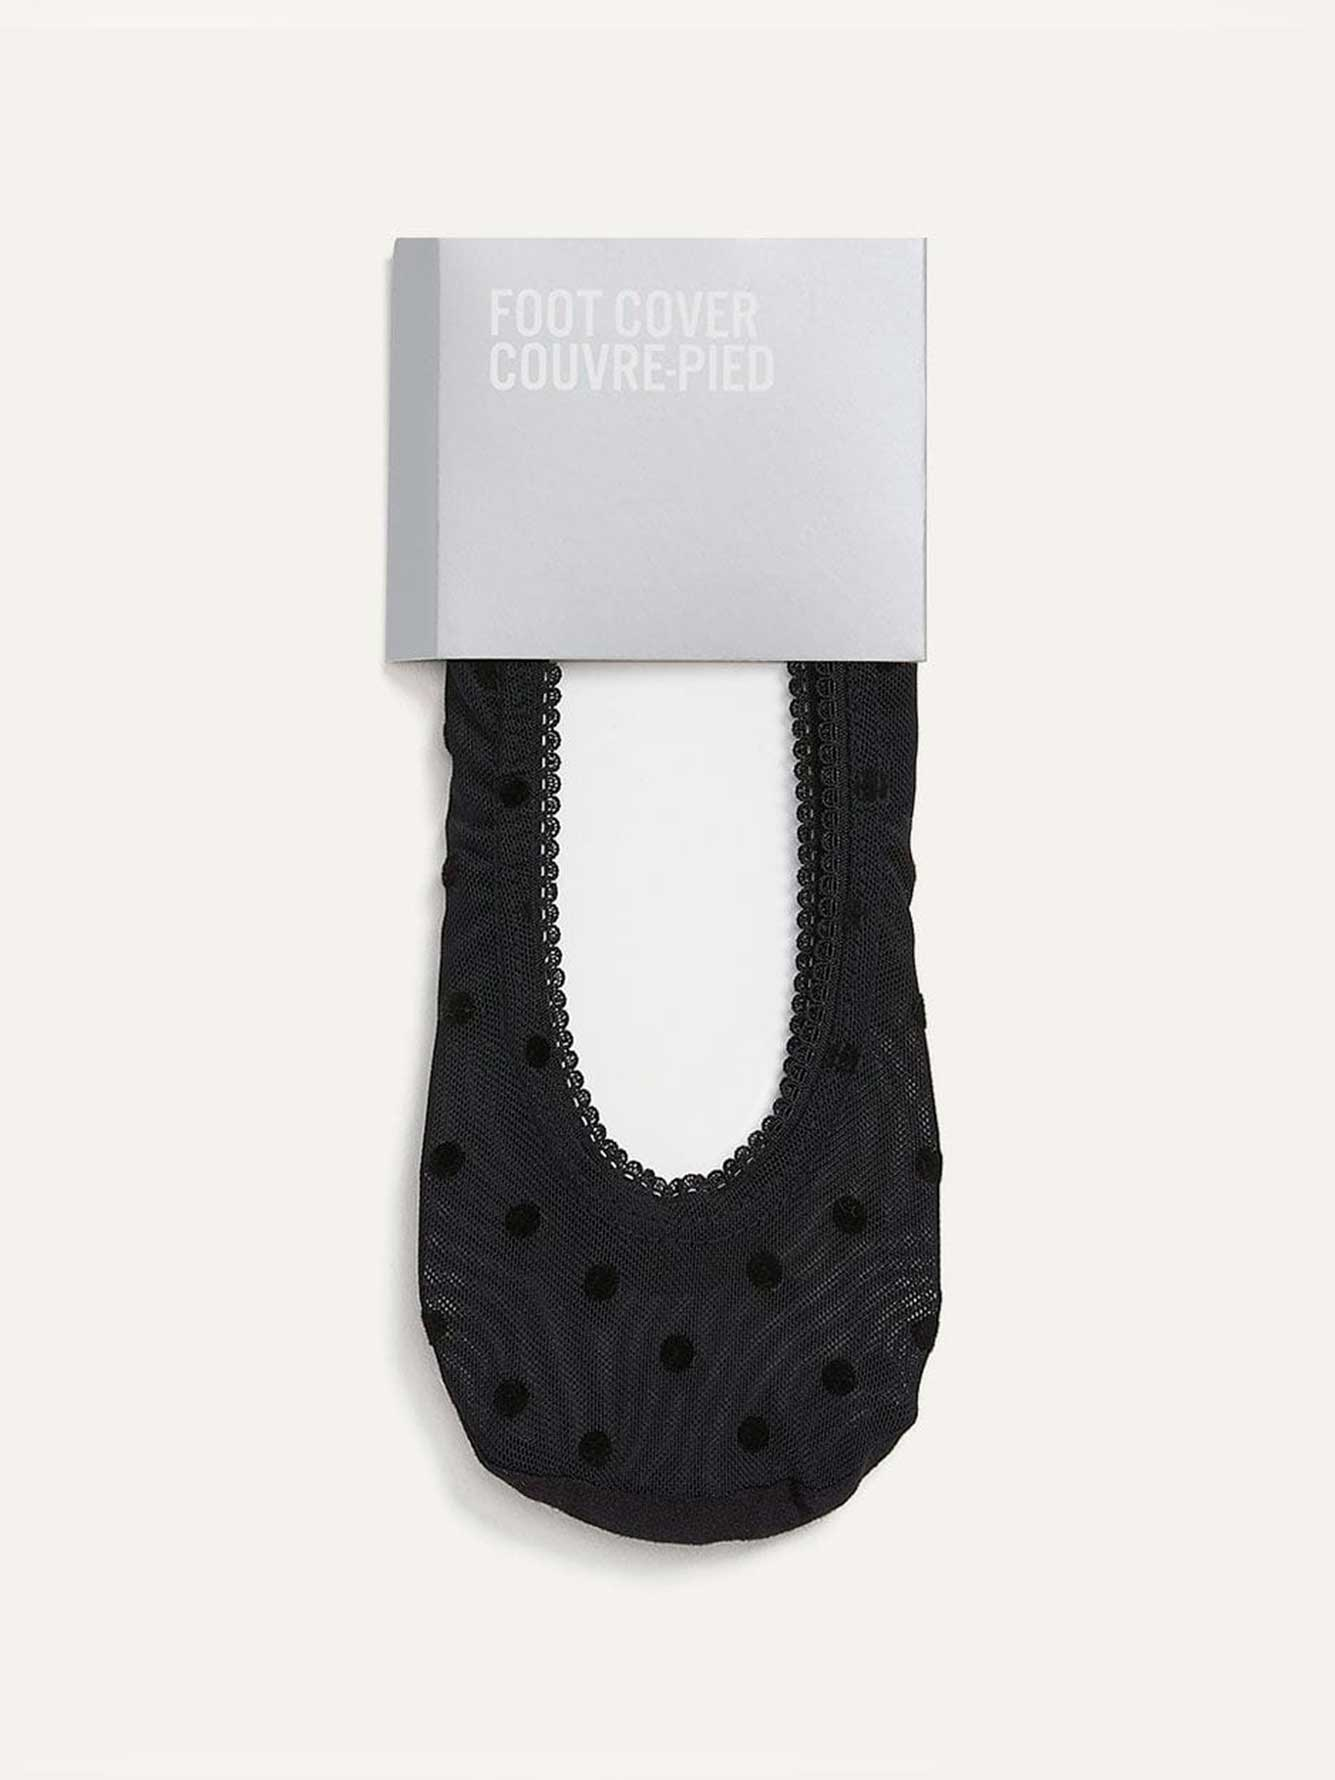 Dotted Mesh Foot Covers